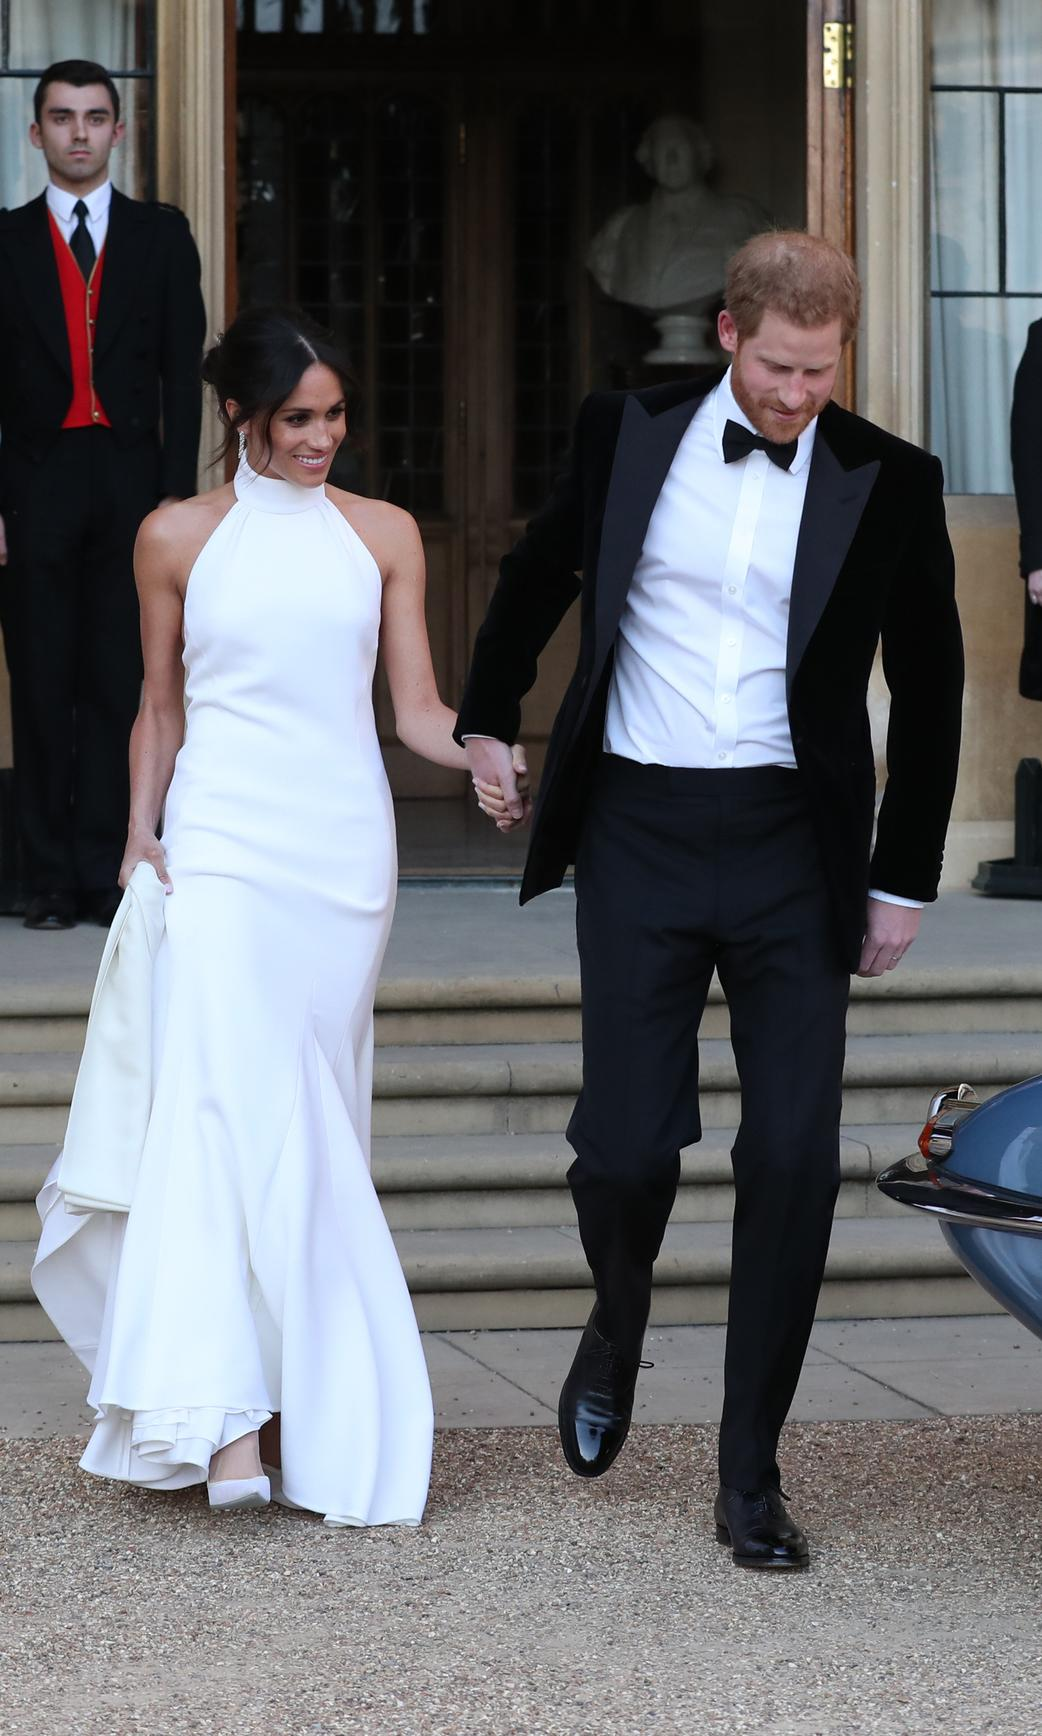 """Meghan, who had only been named as Duchess hours earlier, wowed in her second bridal gown designed by <a href=""""https://www.net-a-porter.com/us/en/d/Shop/Sale/all?designerFilter=290&cm_mmc=GoogleUS--c-_-NAP_EN_NY-_-NAP%20-%20AM%20-%20NY%20-%20Designer_Stella%20McCartney%20-%20BT--Stella%20McCartney%20-%20Alone%20-%20BMM-_-%2Bstella%20%2Bmccartney_b_kwd-13309316076_AM&gclid=EAIaIQobChMIubiTwZHS3wIVC6_ICh0yrw9KEAAYAiAAEgLT8fD_BwE&gclsrc=aw.ds"""">Stella McCartney</a>. The sleek halter gown was a vast shakeup from her traditional Givenchy wedding gown she donned for the ceremony."""